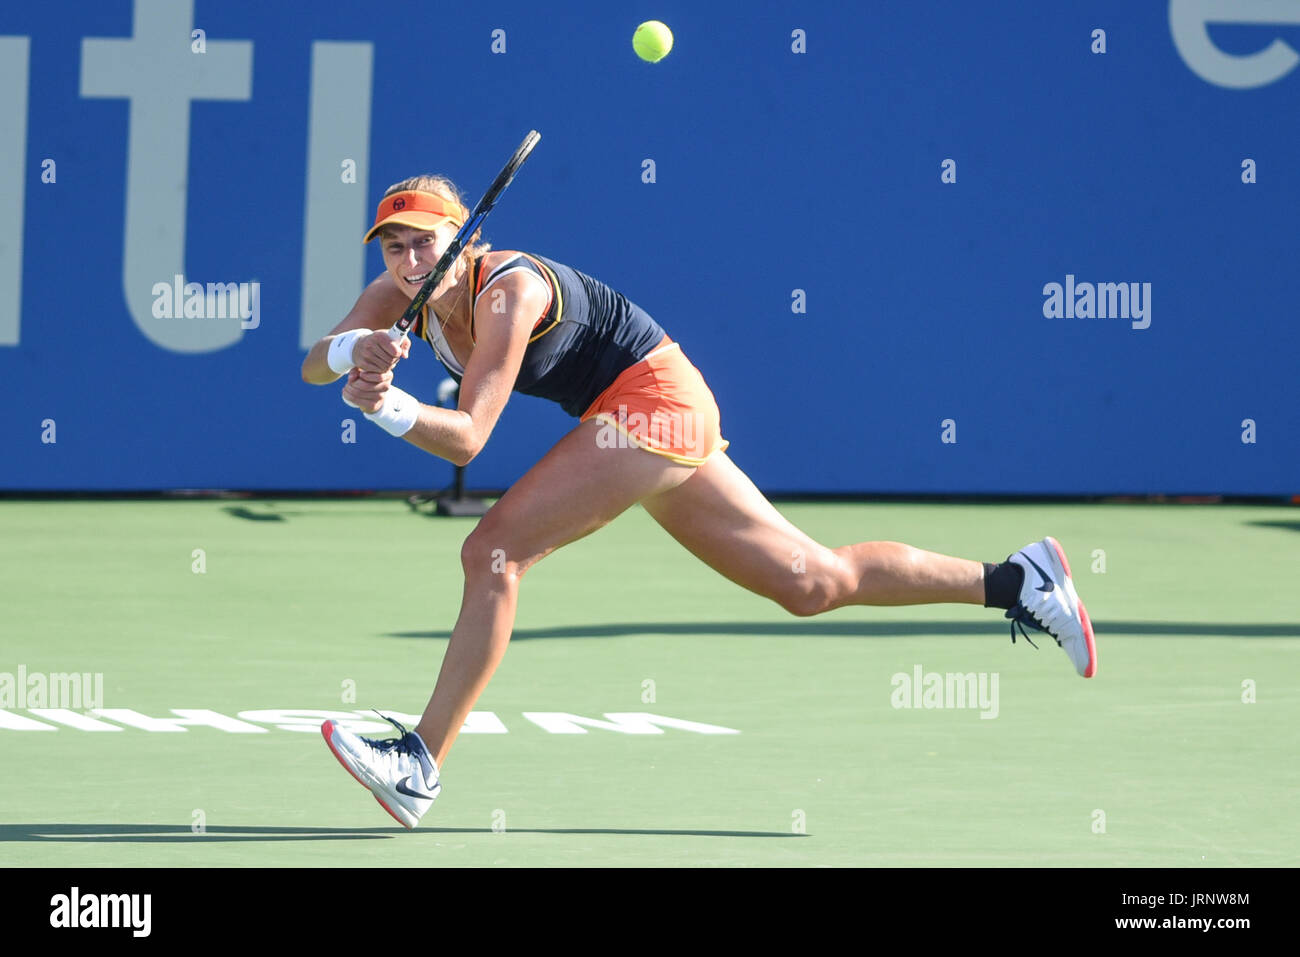 Washington, D.C, USA. 5th Aug, 2017. EKATERINA MAKAROVA hits a running backhand during her semifinal match at the Citi Open at the Rock Creek Park Tennis Center in Washington, DC Credit: Kyle Gustafson/ZUMA Wire/Alamy Live News - Stock Image